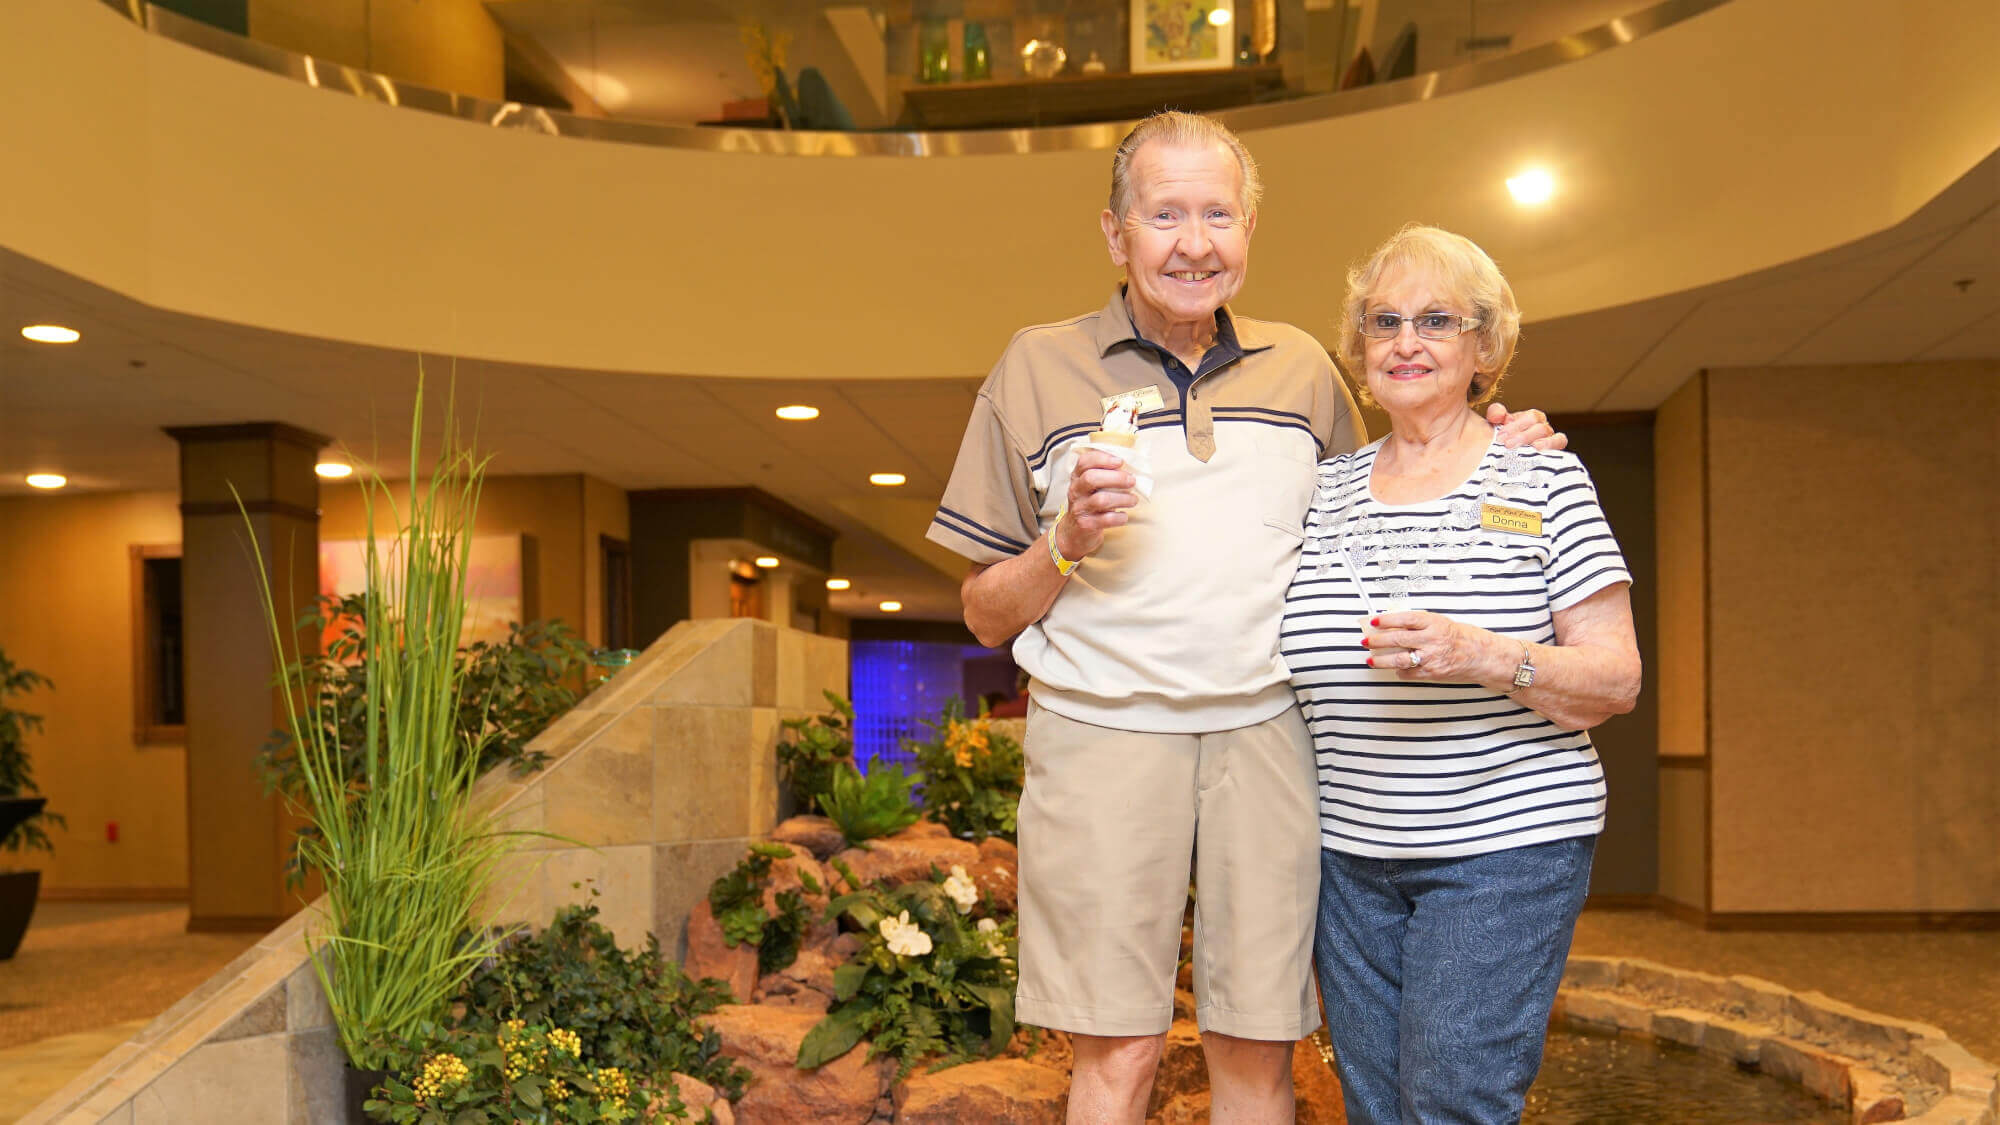 Happy senior couple standing in the main hall of Resort Lifestyle Communities eating ice cream.